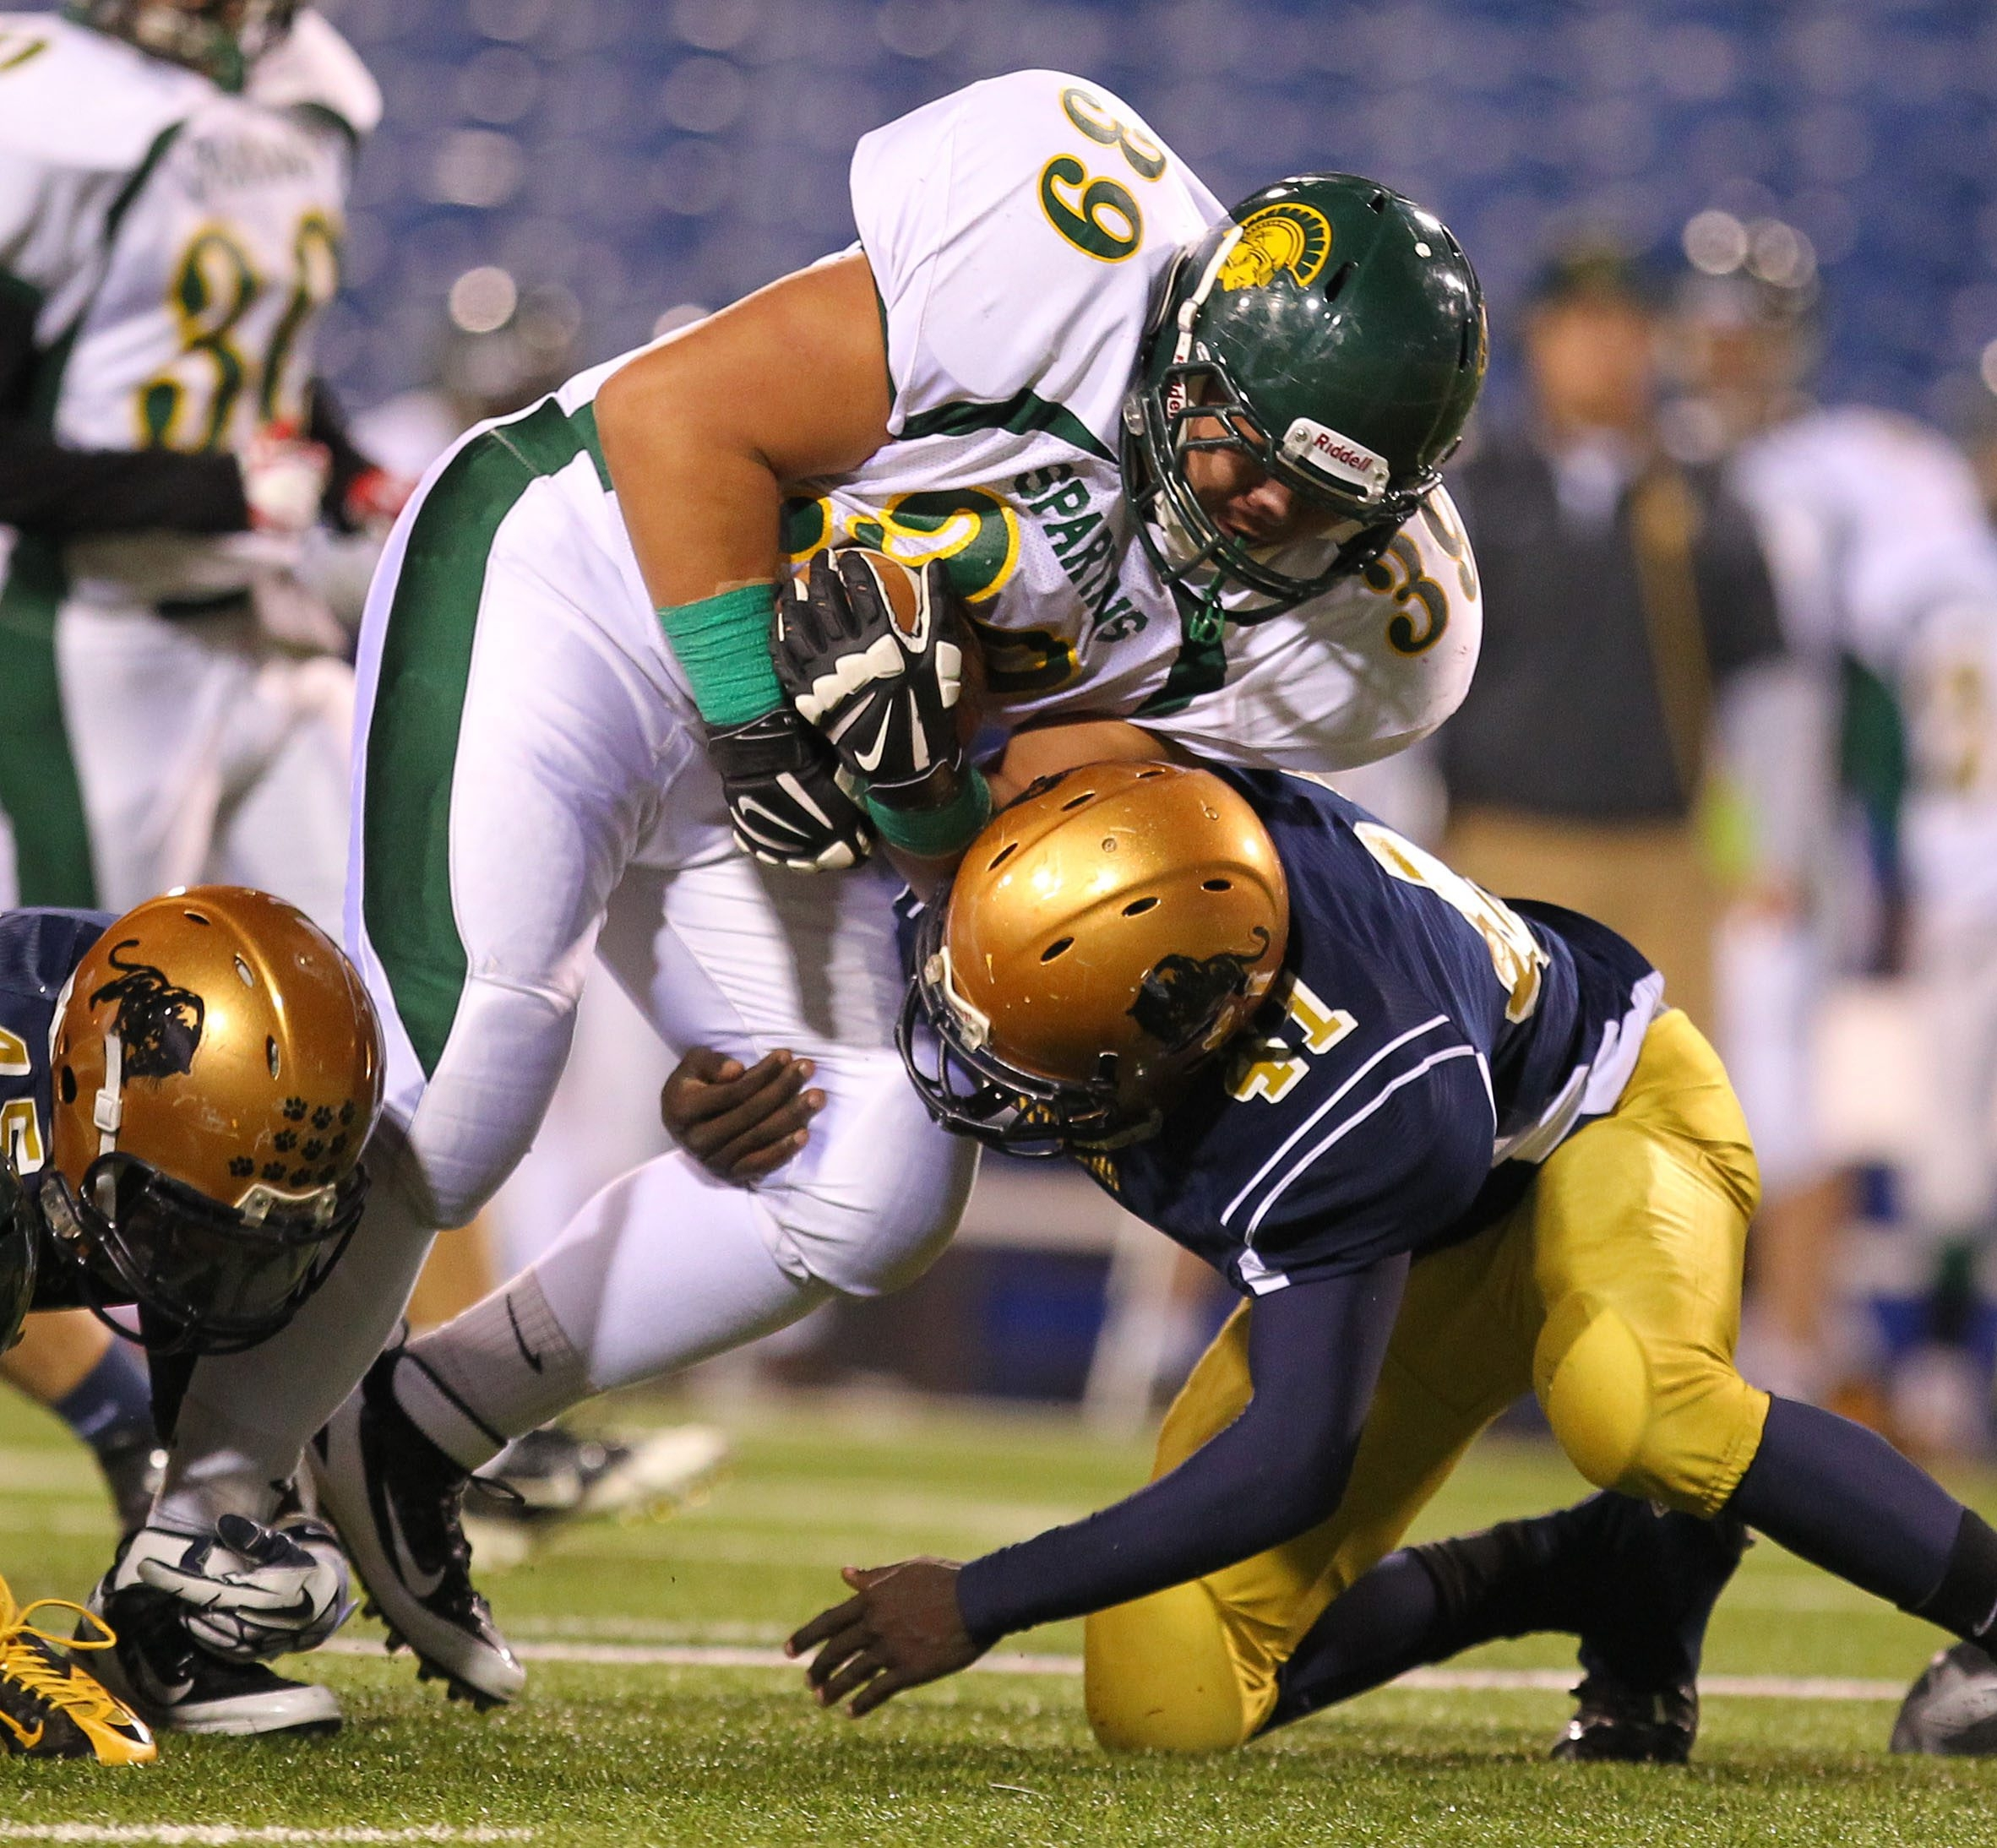 Williamsville North's Duke Hwang tries to run over Sweet Home's Milton Ziegler during the first half of the Section VI Class A final at Ralph Wilson Stadium on Friday.